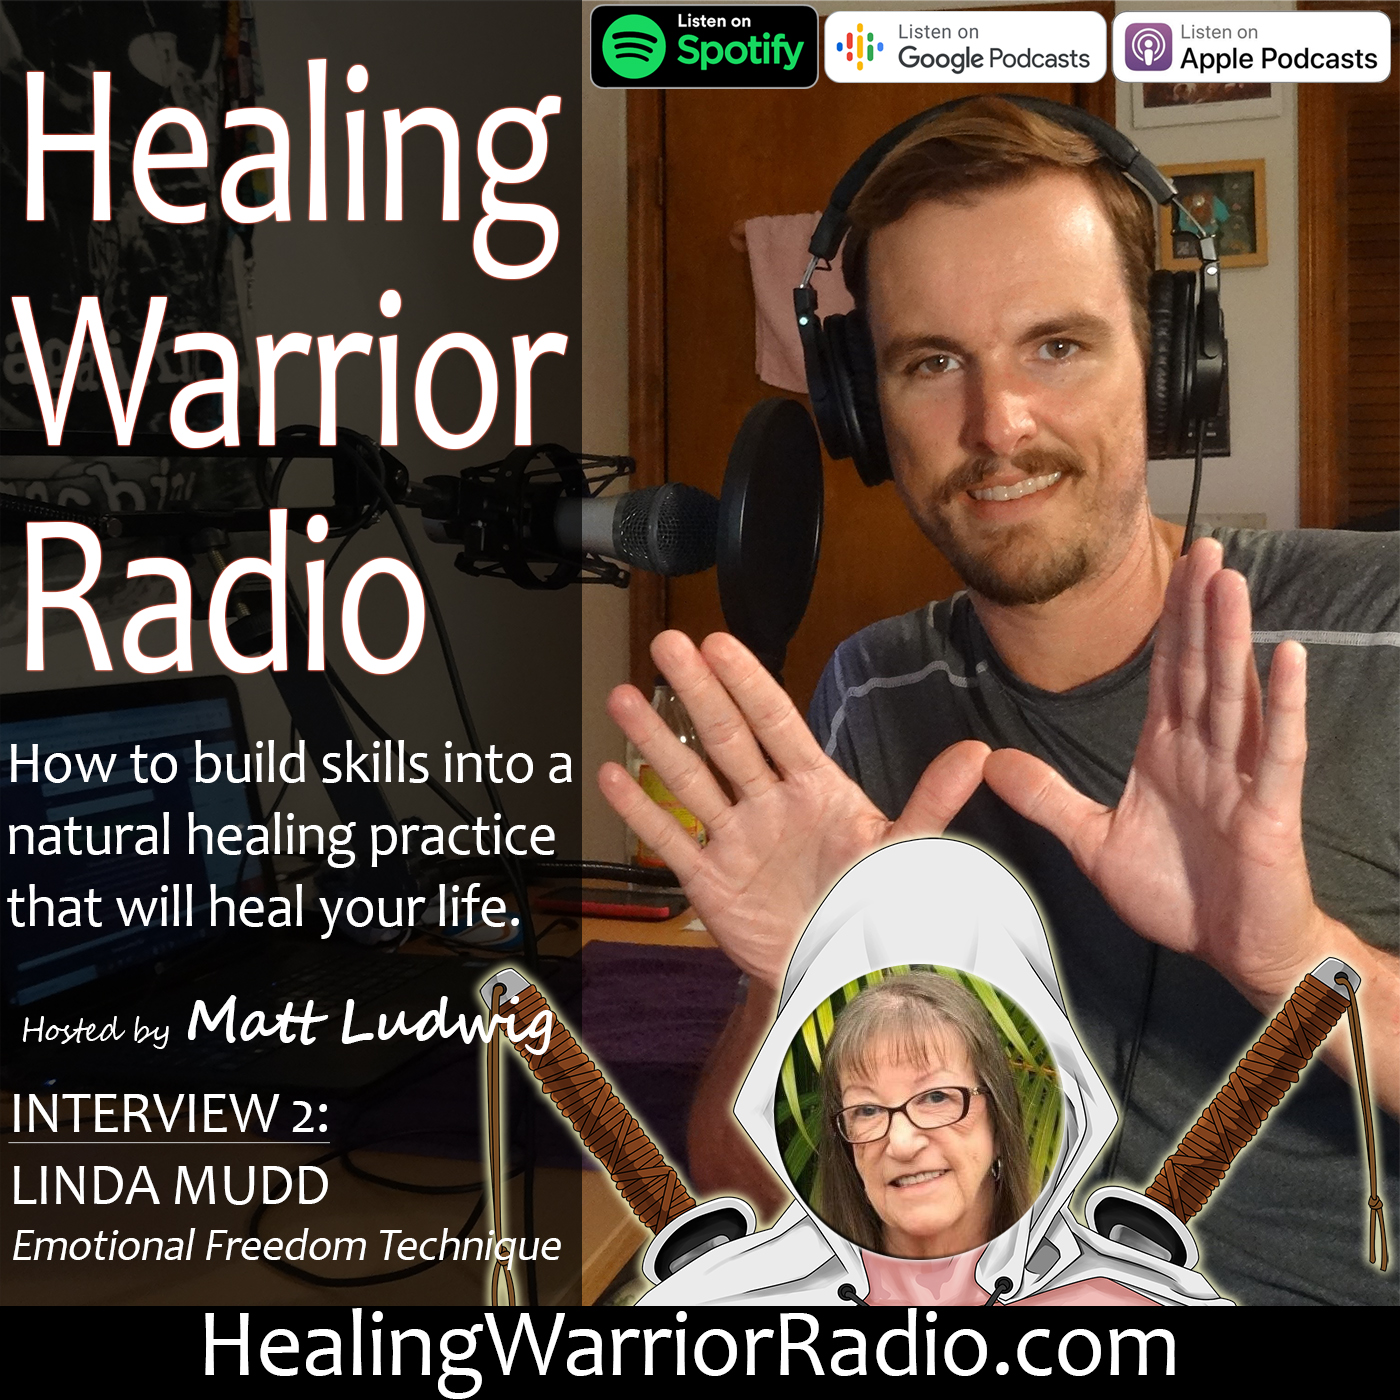 Interview: Healing Psoriasis through Emotional Freedom Techniques (EFT) with Linda Mudd